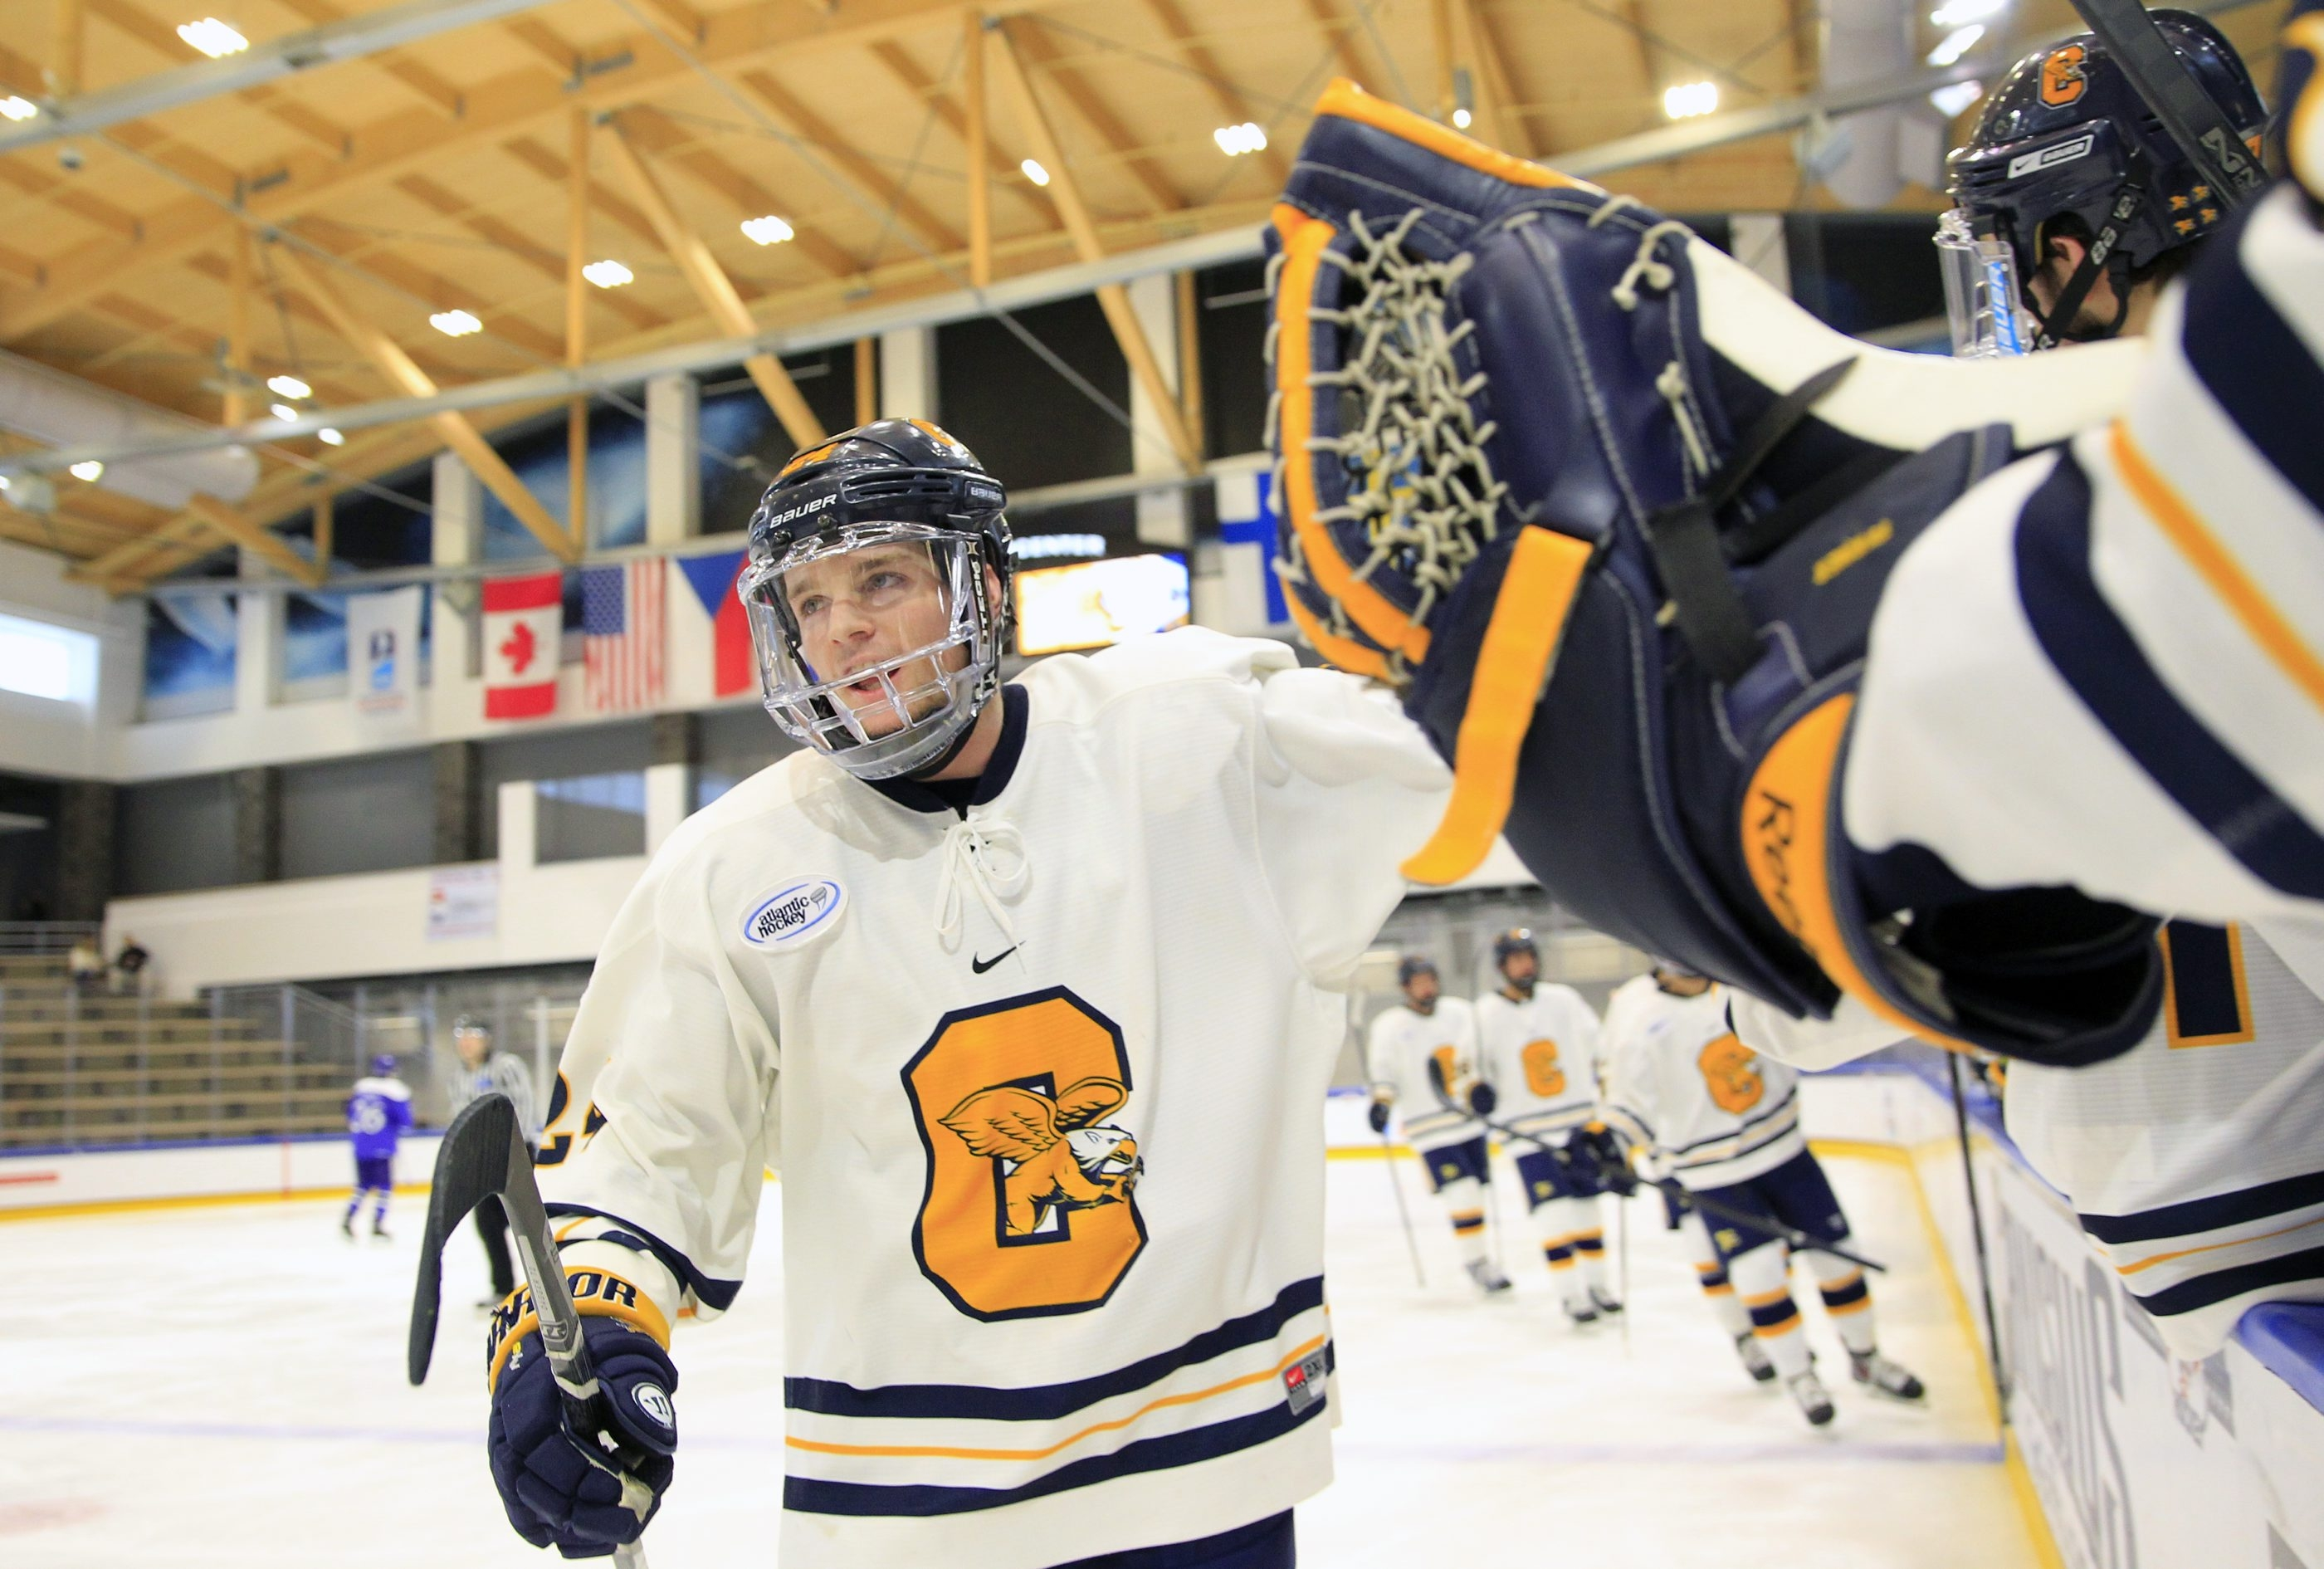 Canisius defenseman Chris Rumble says he never gets tired of telling about his triumph over leukemia.